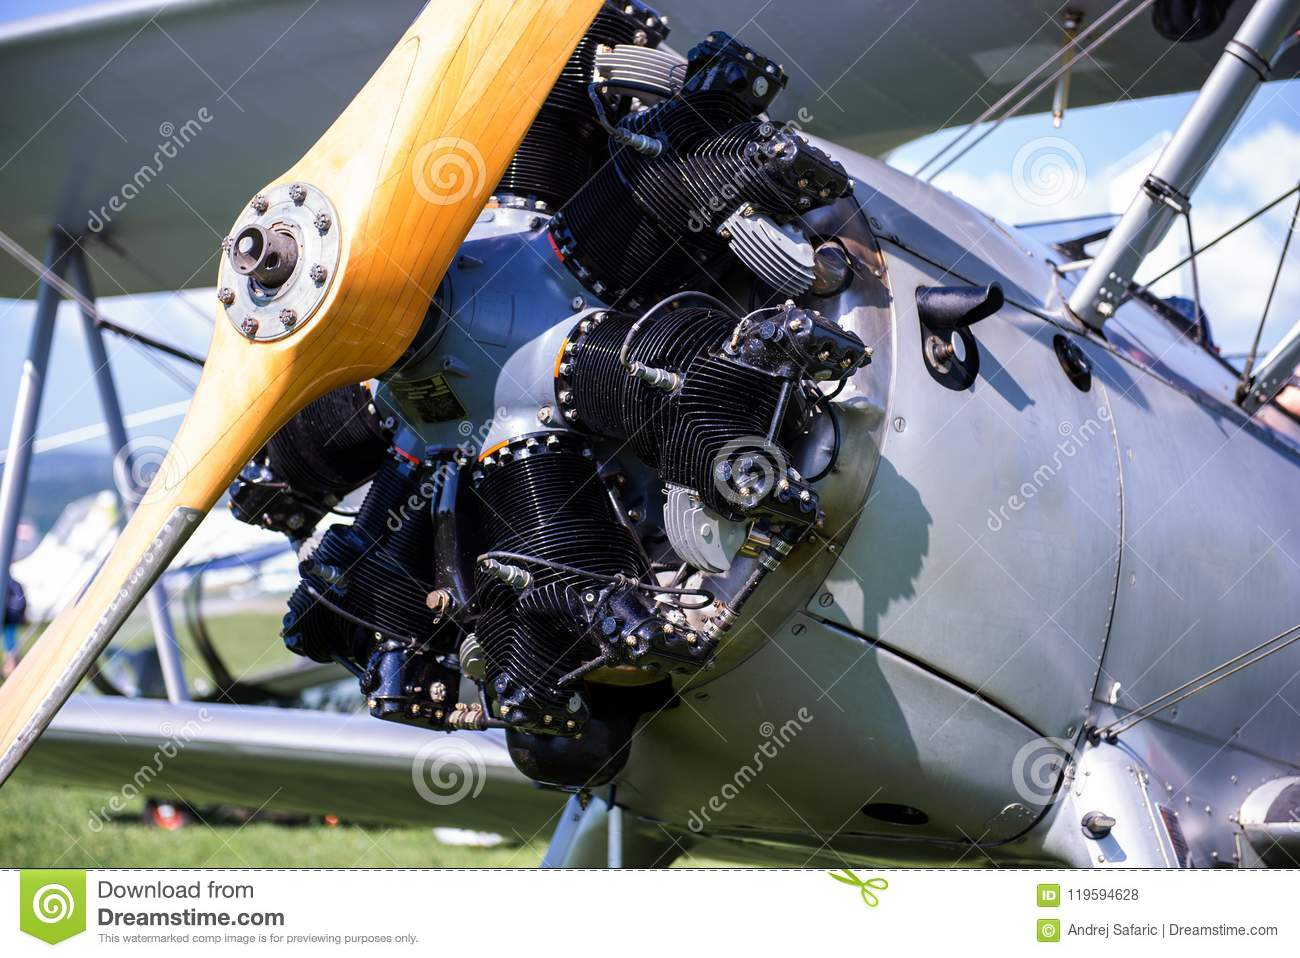 efd1f3e6265a Royalty-Free Stock Photo. Vintage aircraft with radial engine and wooden  propeller